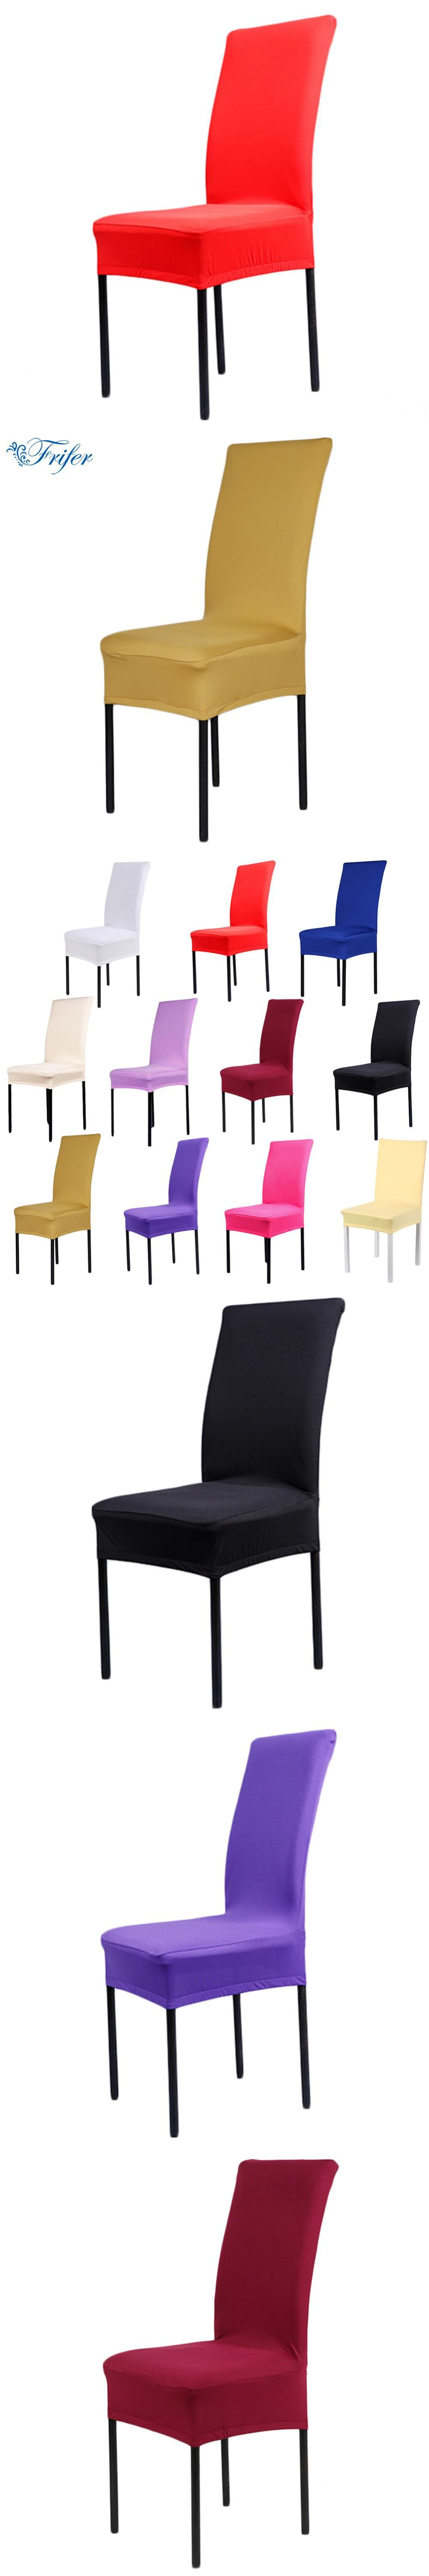 Home Chair Cover Removable Stretch Elastic Seat Covers Spandex